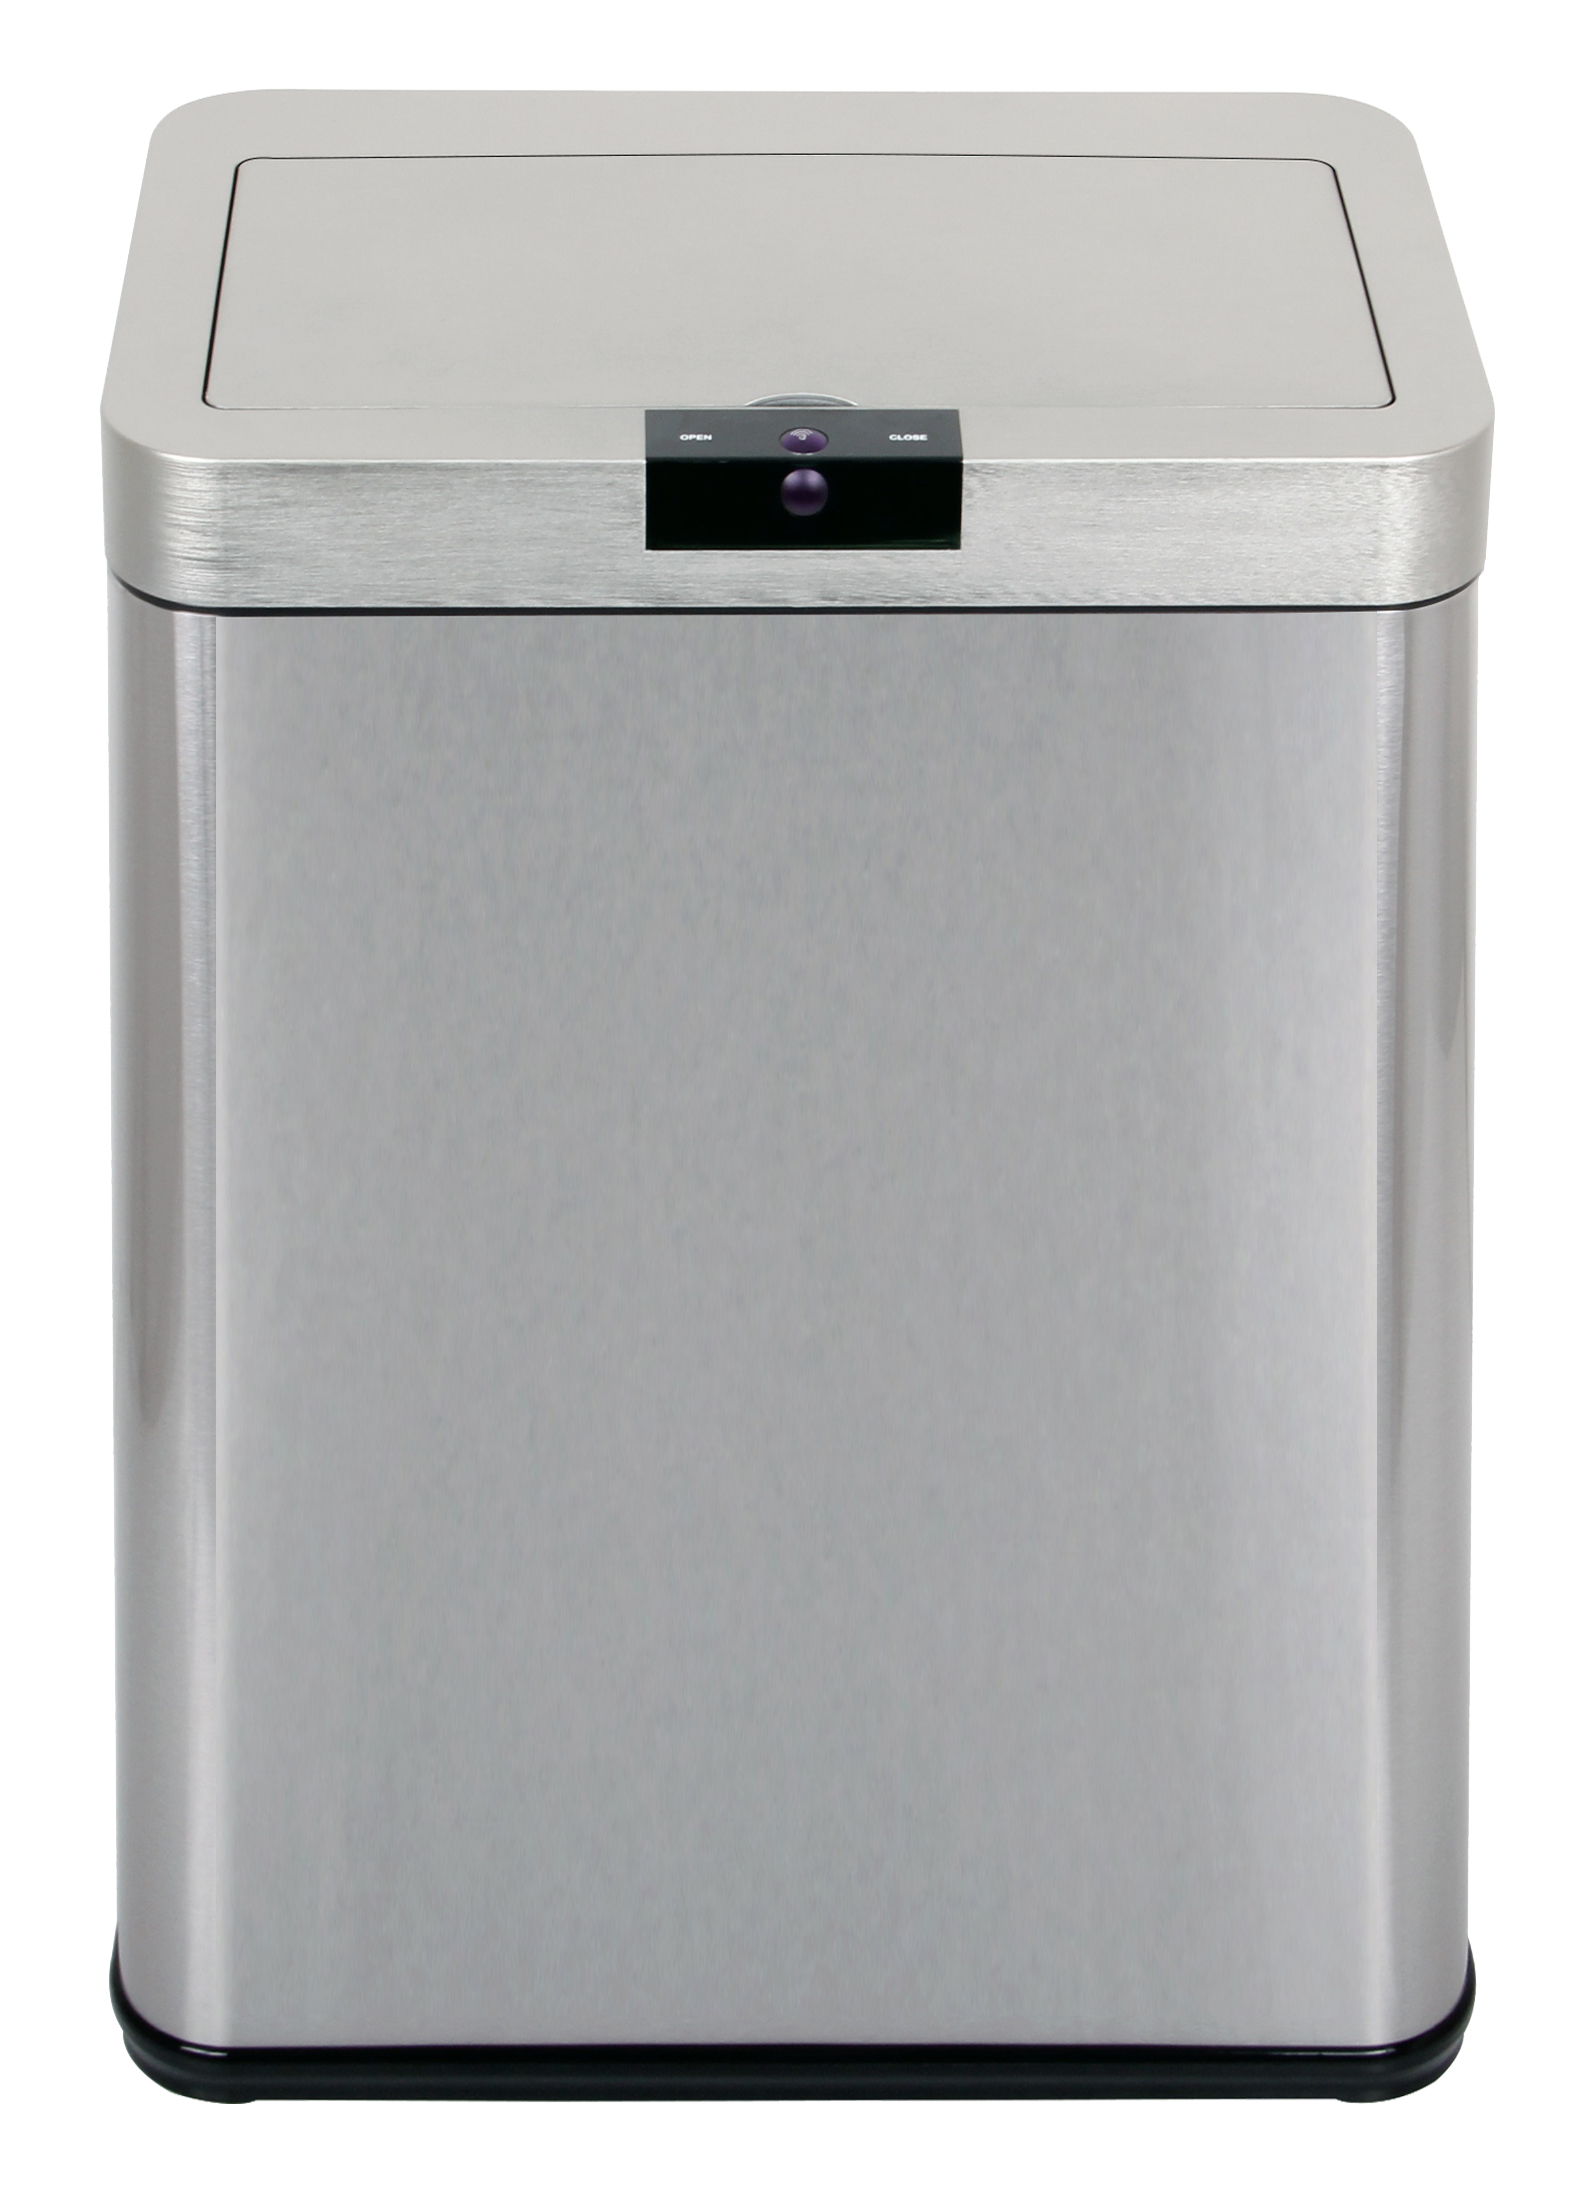 Sensor Trash Cans with Stainless Steel Material (KL-022A)